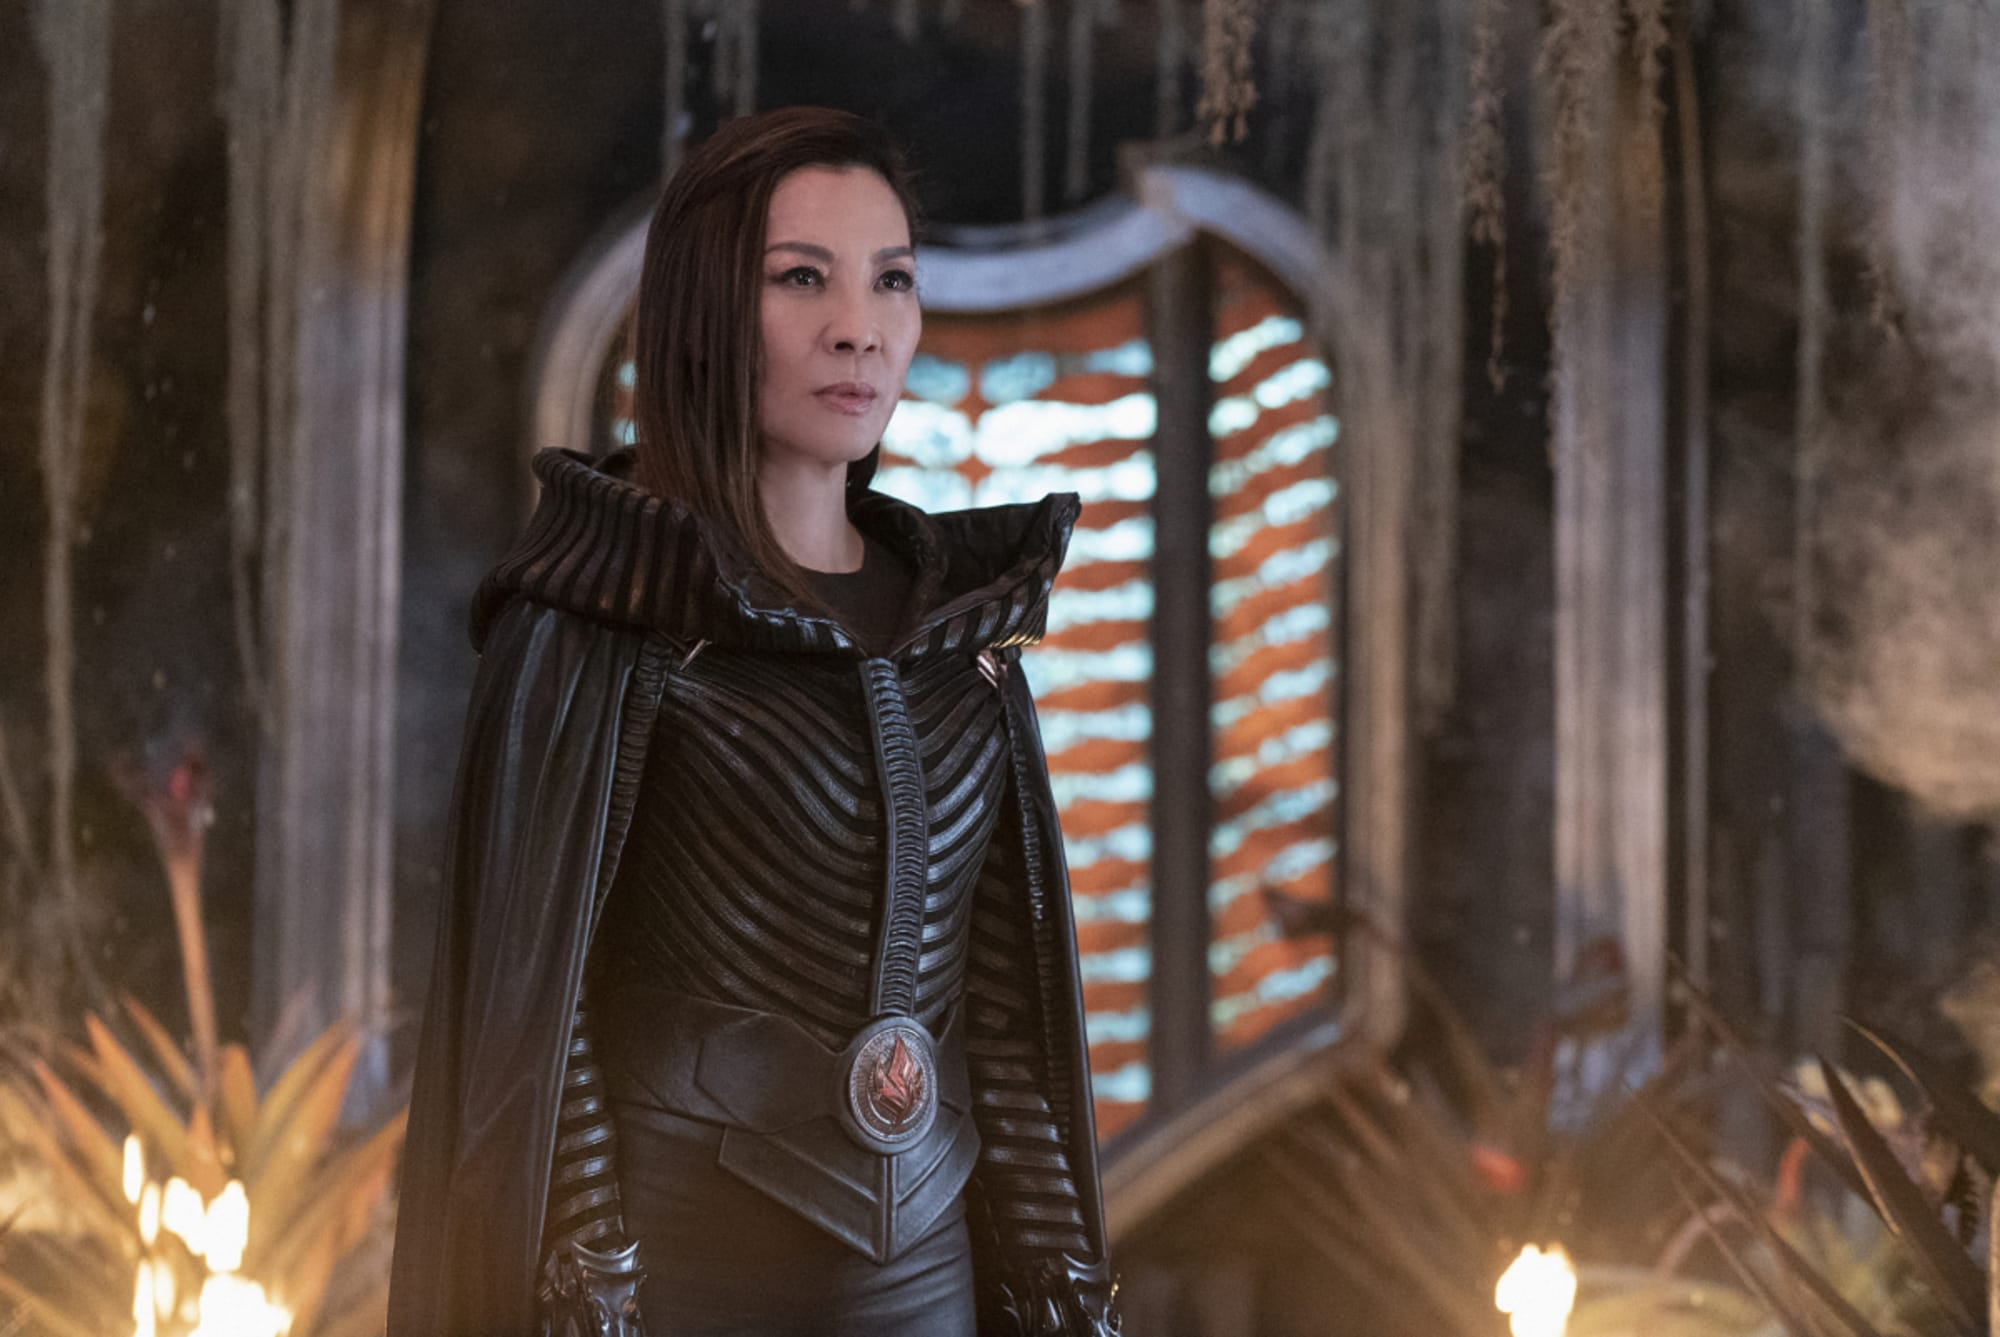 Section 31 confirmed to be in development with Michelle Yeoh attached